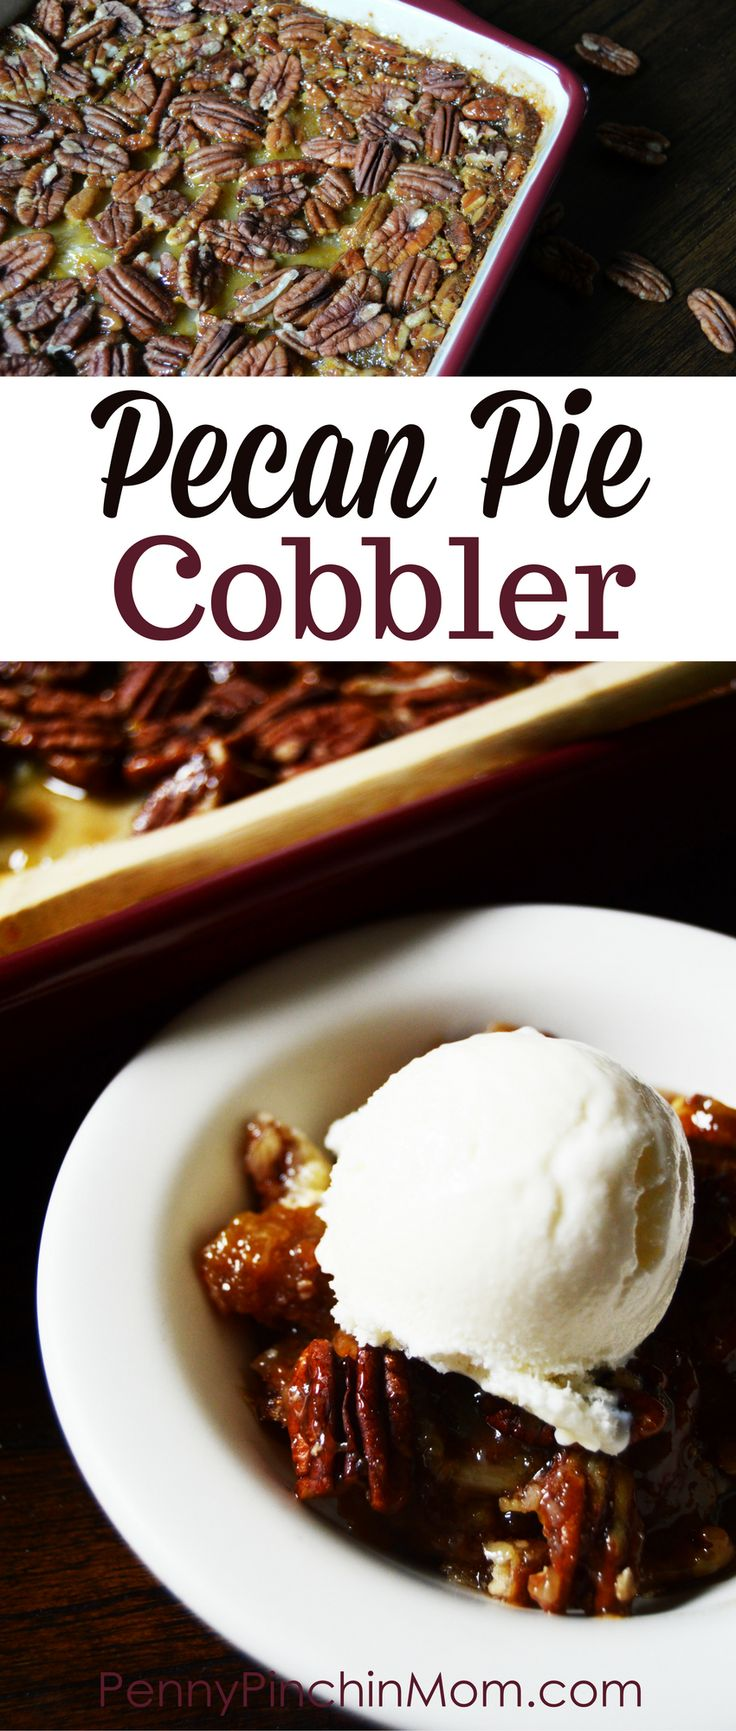 Pecan Pie Cobbler | Pecan Pie Recipe | Easy Pecan Pie | Thanksgiving Dessert | Easy Cobbler Recipe | Pecan Dessert |  #pecans  #desserts  #Thanksgiving